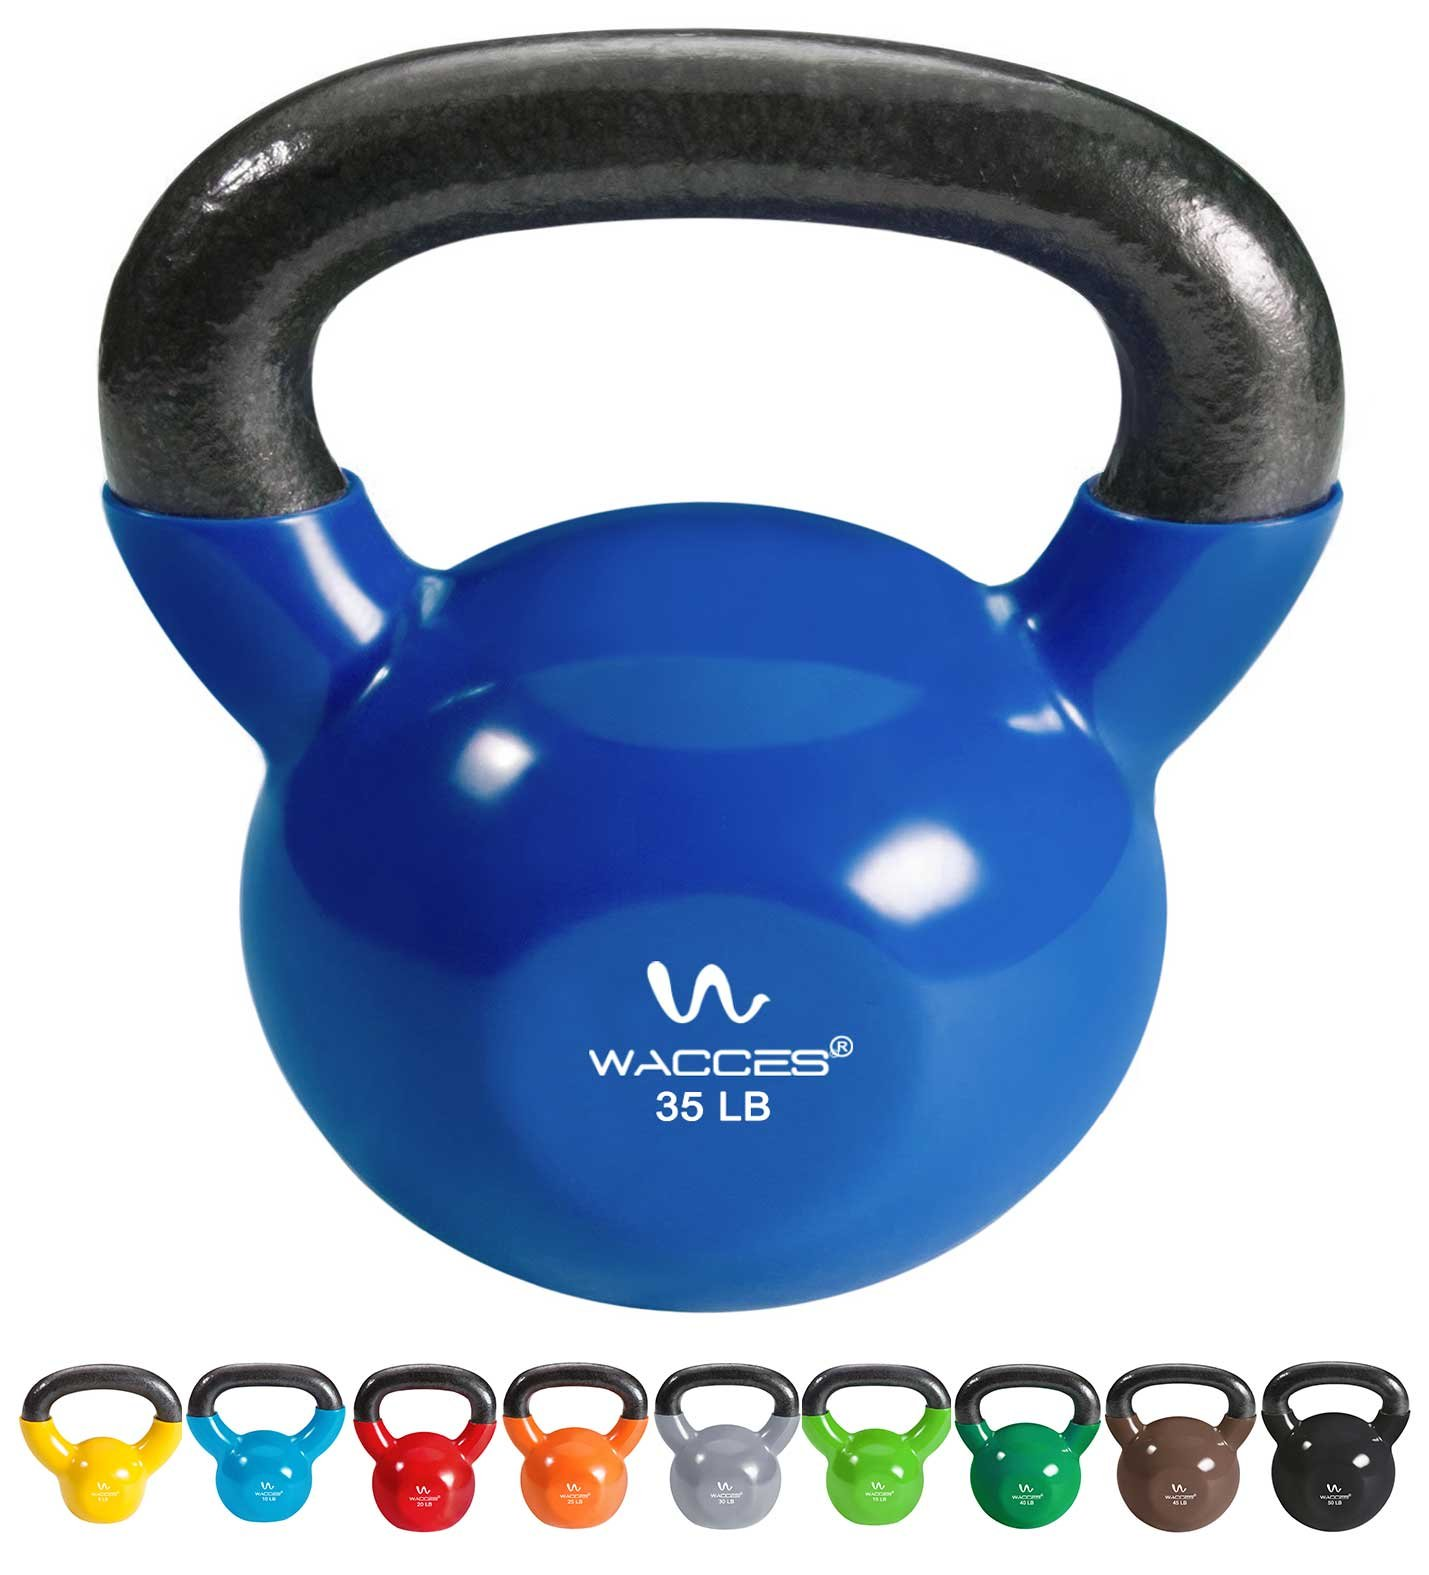 Wacces Single Vinyl Dipped Kettlebell for Croos Training, Home Exercise, Workout 35LB